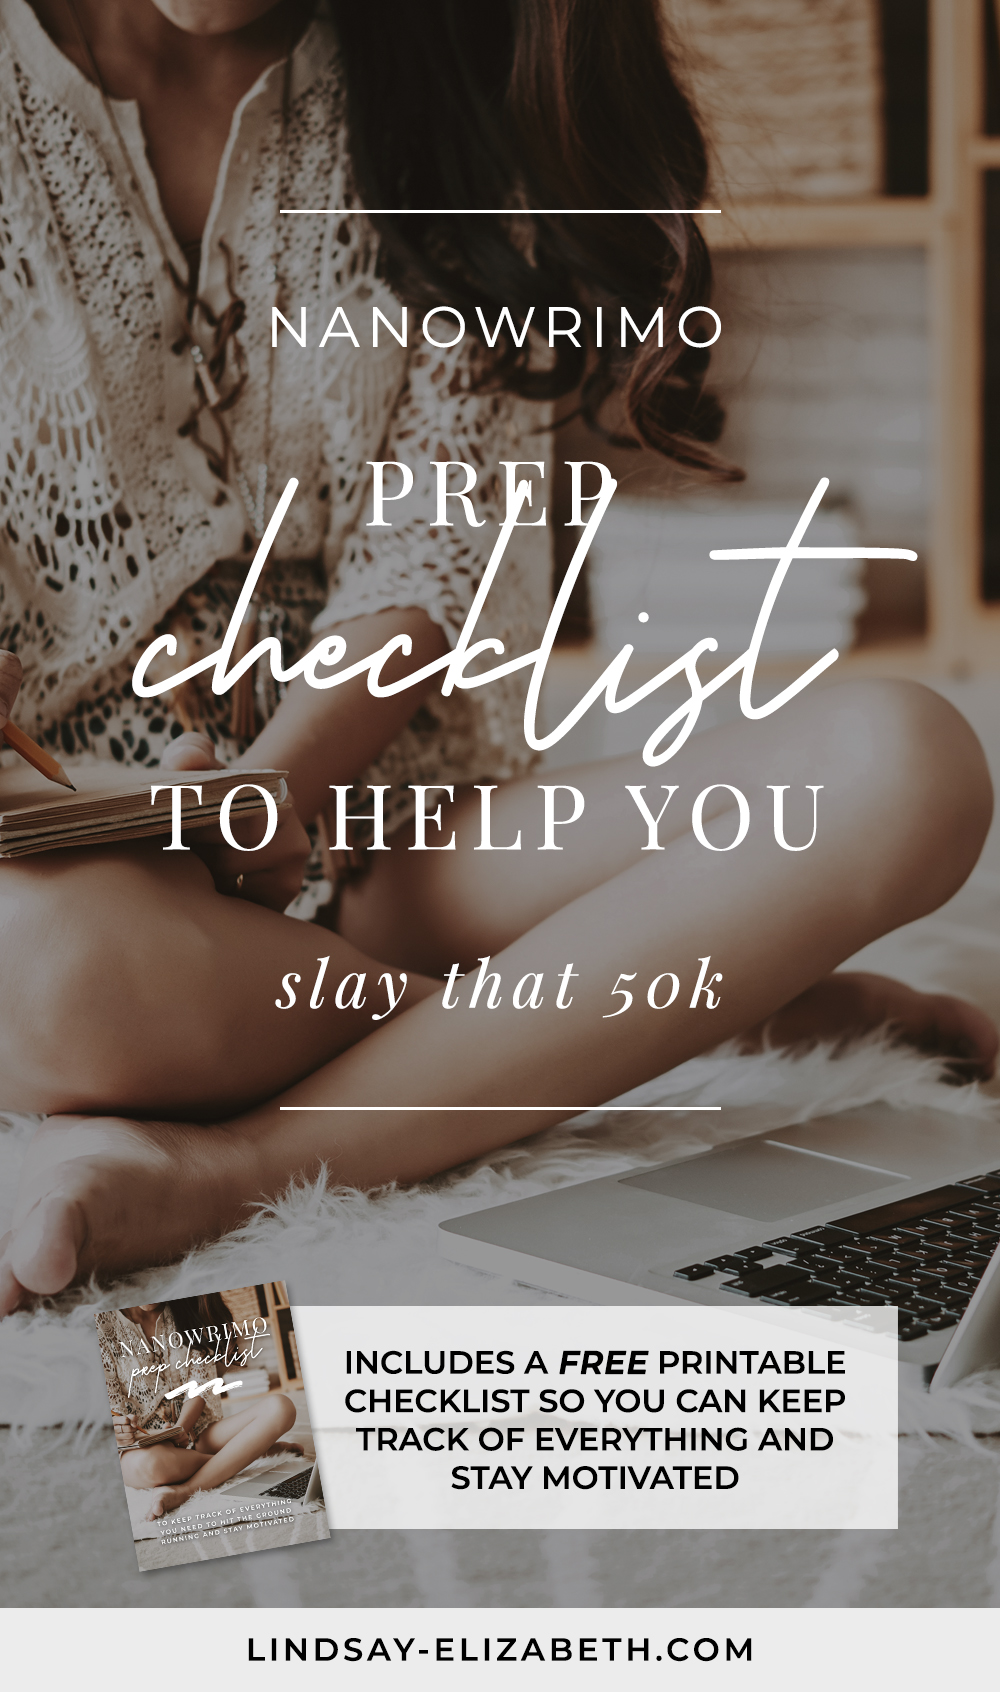 This NaNoWriMo prep checklist will set you up with a strong foundation to start from and give you the best chance at staying motivated throughout the month so you can hit that 50k goal. #writinganovel #authors #writers #writingtips #writingadvice